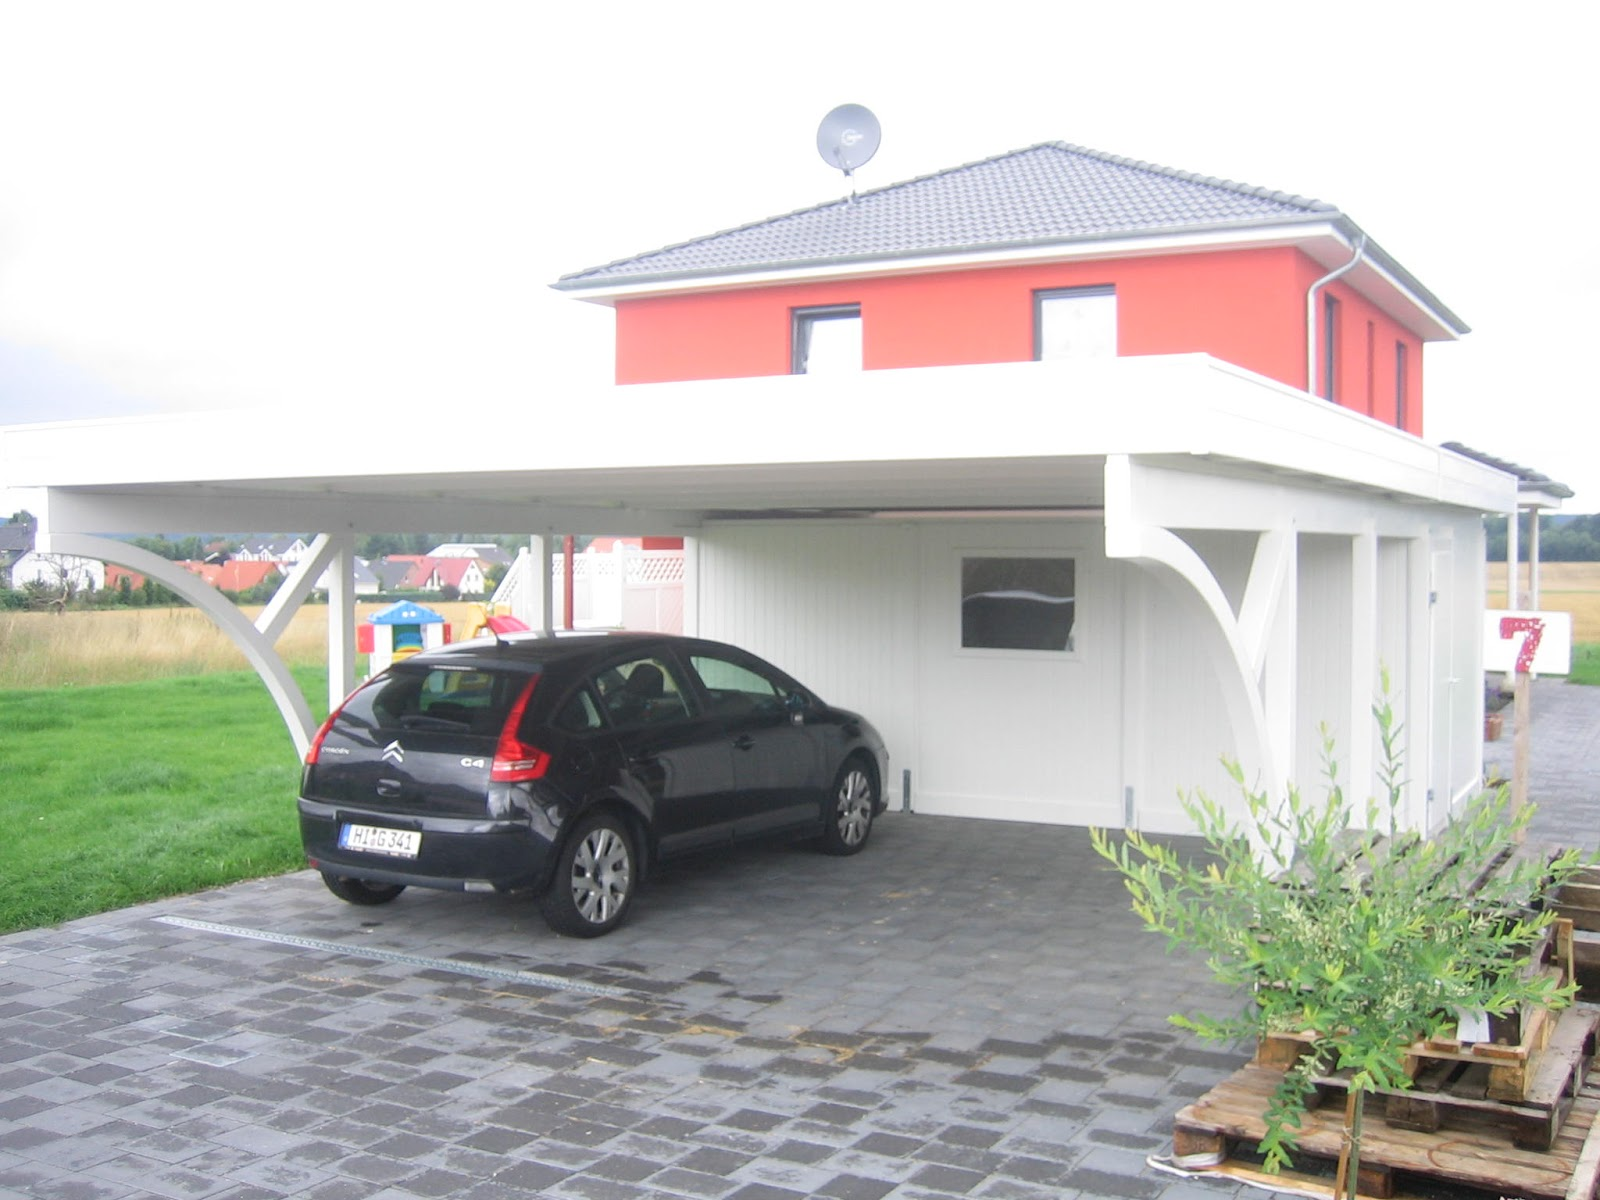 hollstamm montage das carport die alternative zur garage. Black Bedroom Furniture Sets. Home Design Ideas